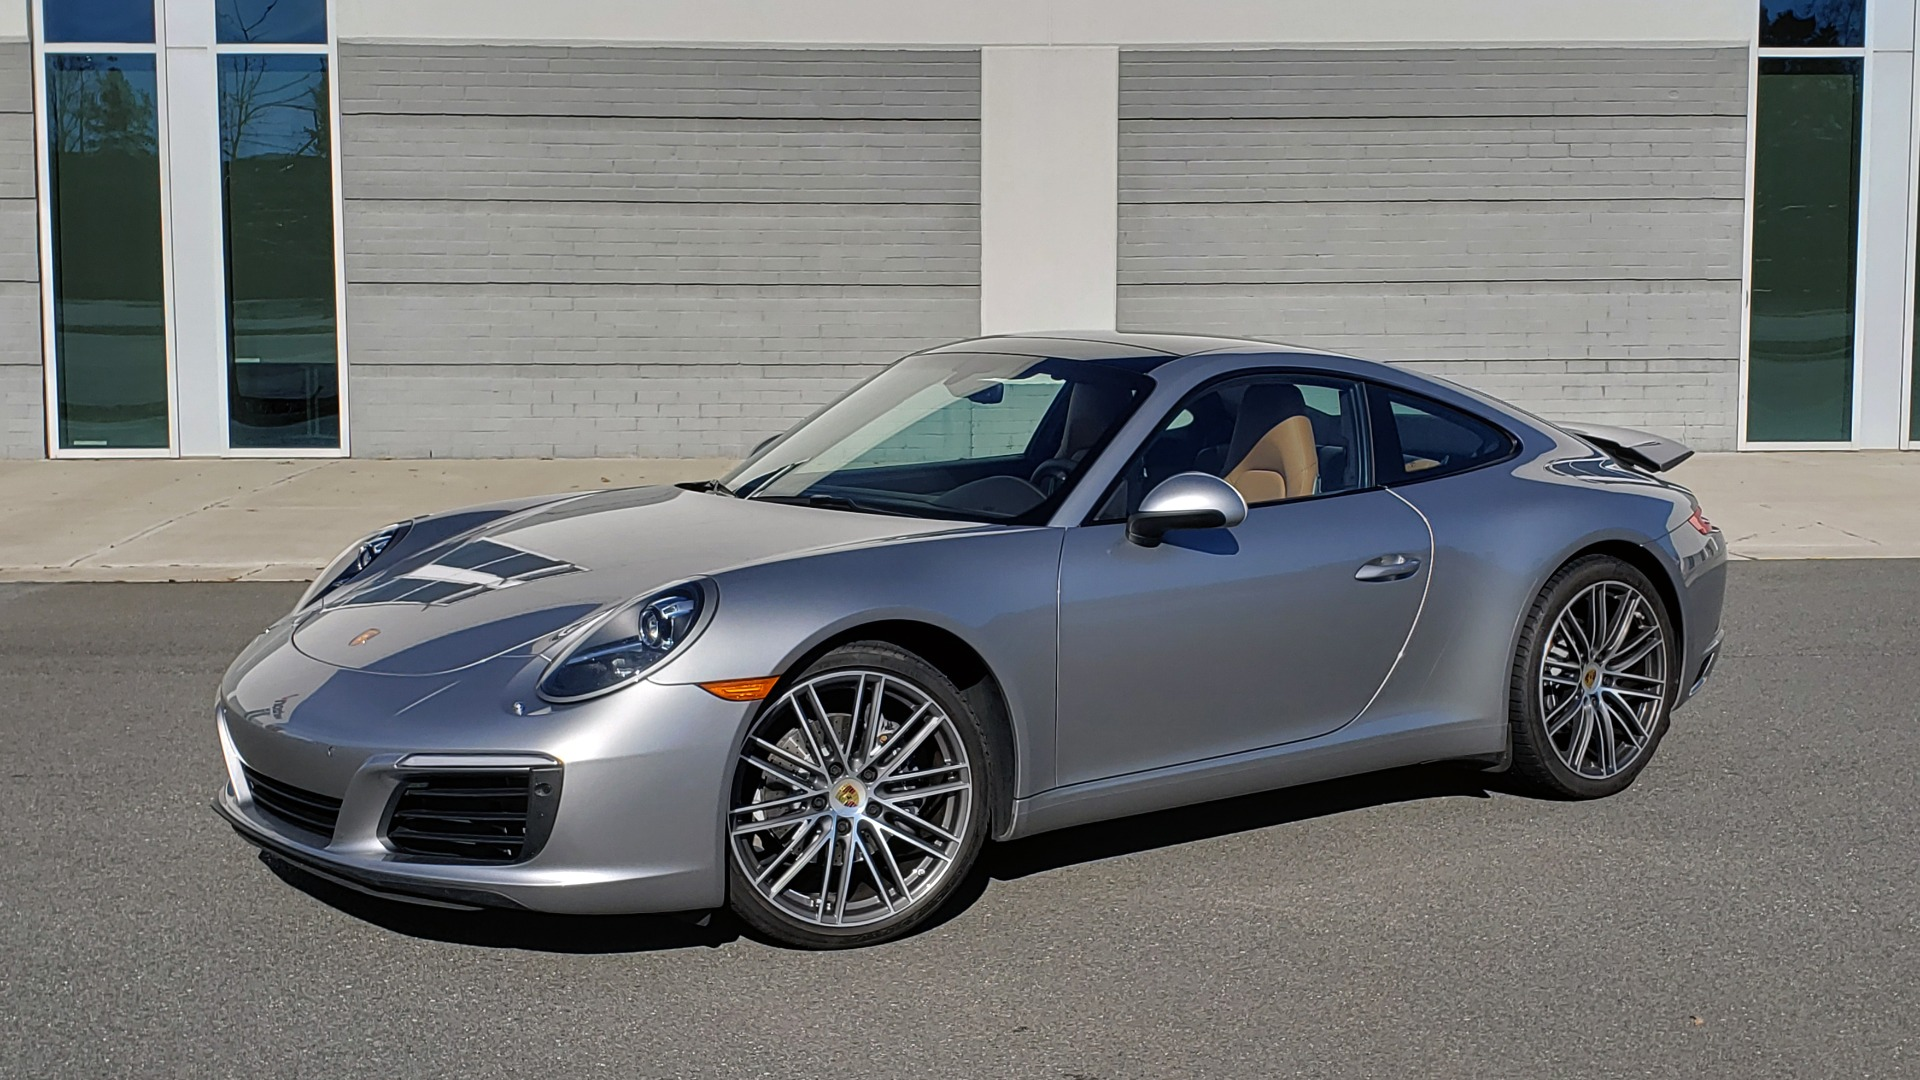 Used 2017 Porsche 911 CARRERA COUPE / 3.0L / 7-SPD MAN / NAV / PDLS / SUNROOF / REARVIEW for sale Sold at Formula Imports in Charlotte NC 28227 9